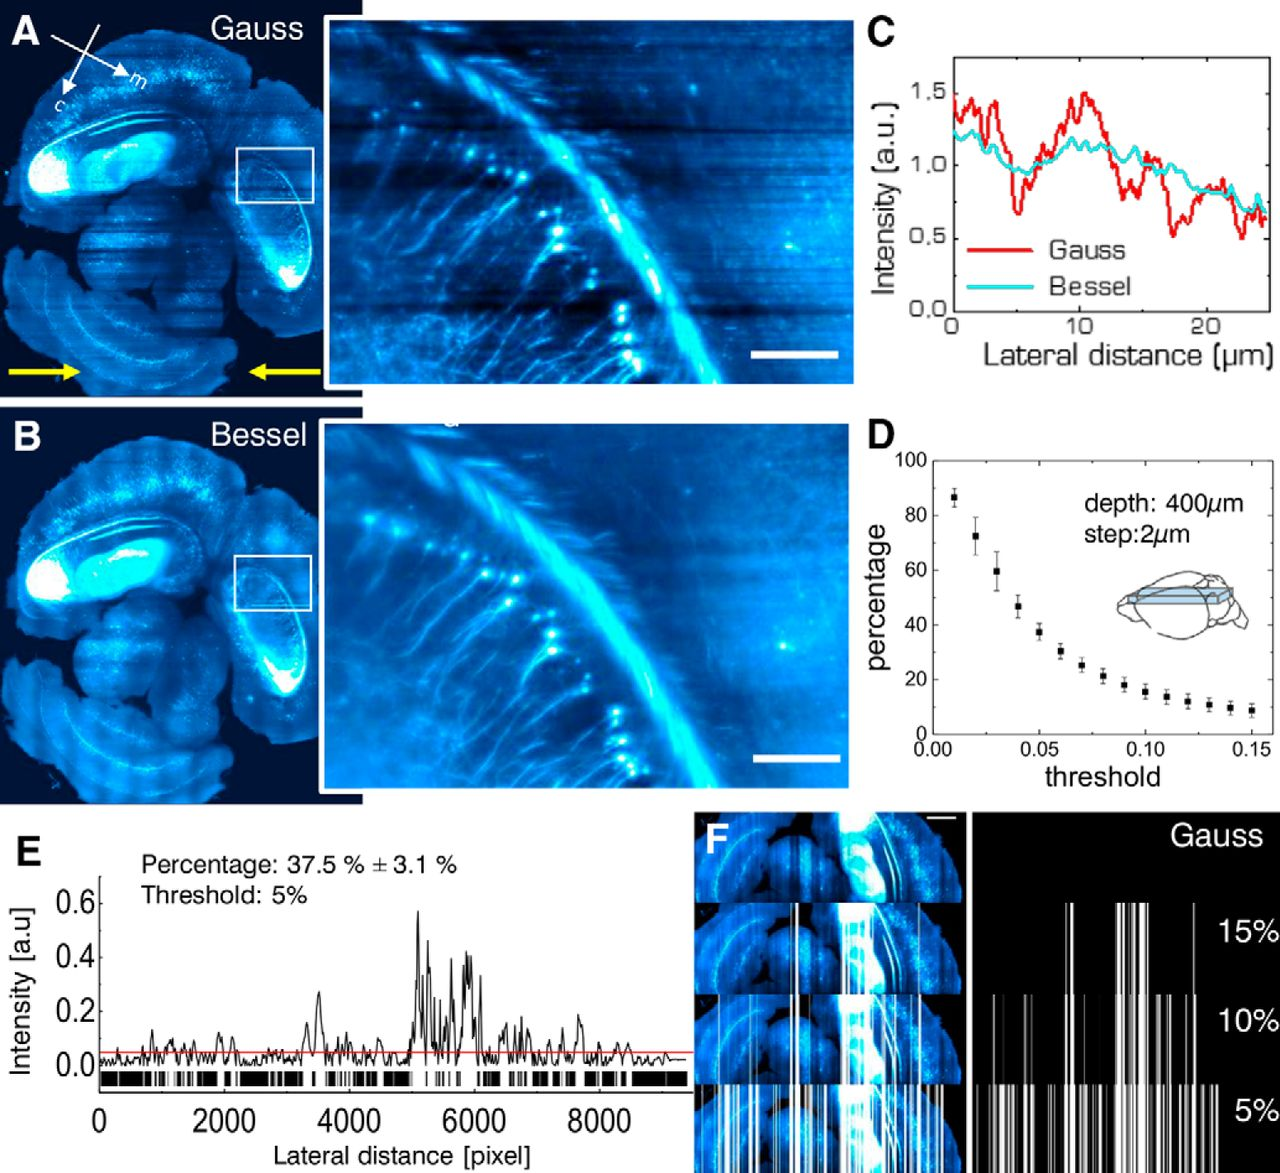 High Fidelity Imaging In Brain Wide Structural Studies Using Light Audio How To Make Led Bar Graphs Measure Intensity Electrical Download Figure